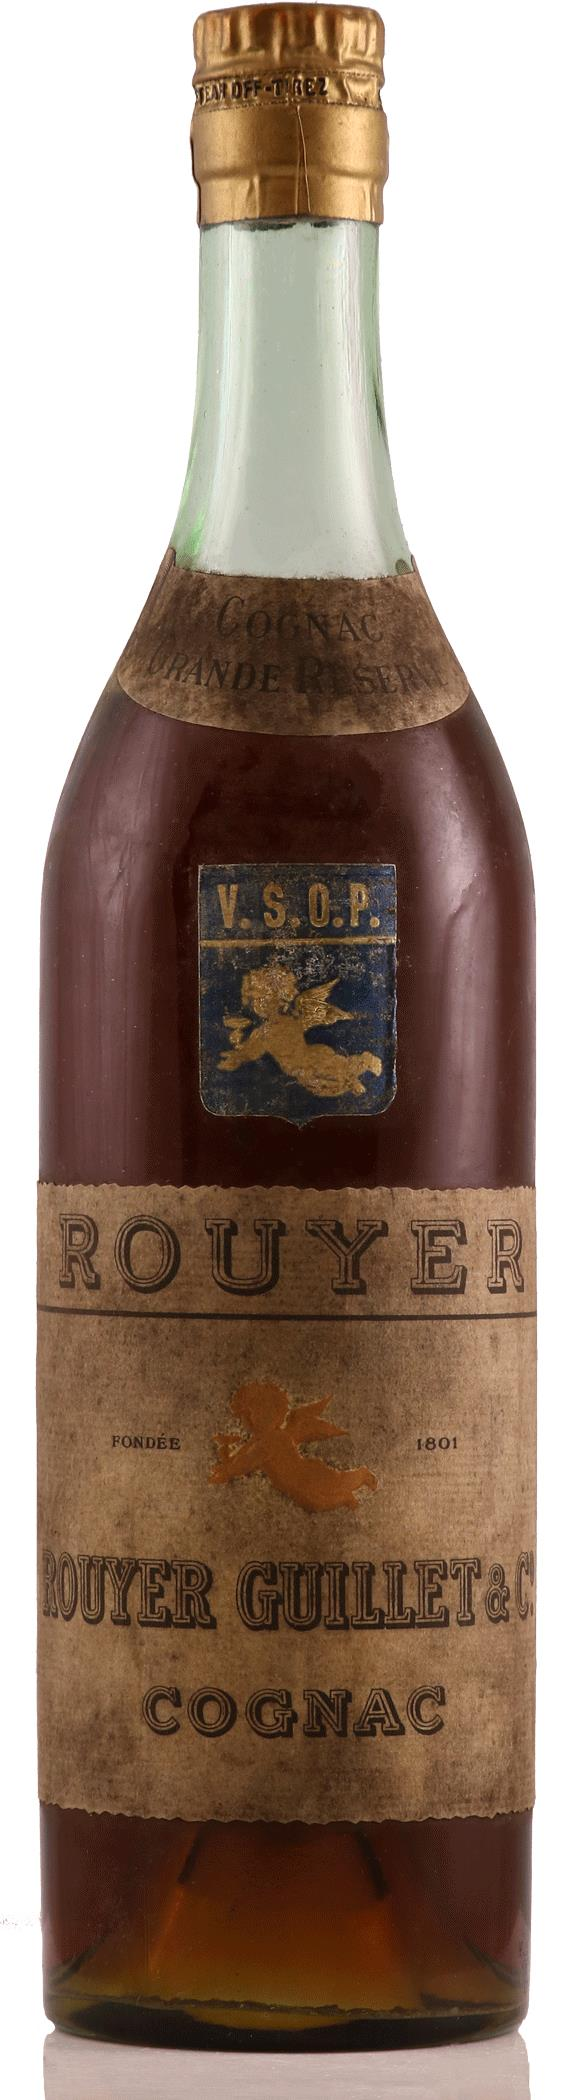 Cognac Rouyer Guillet & Co